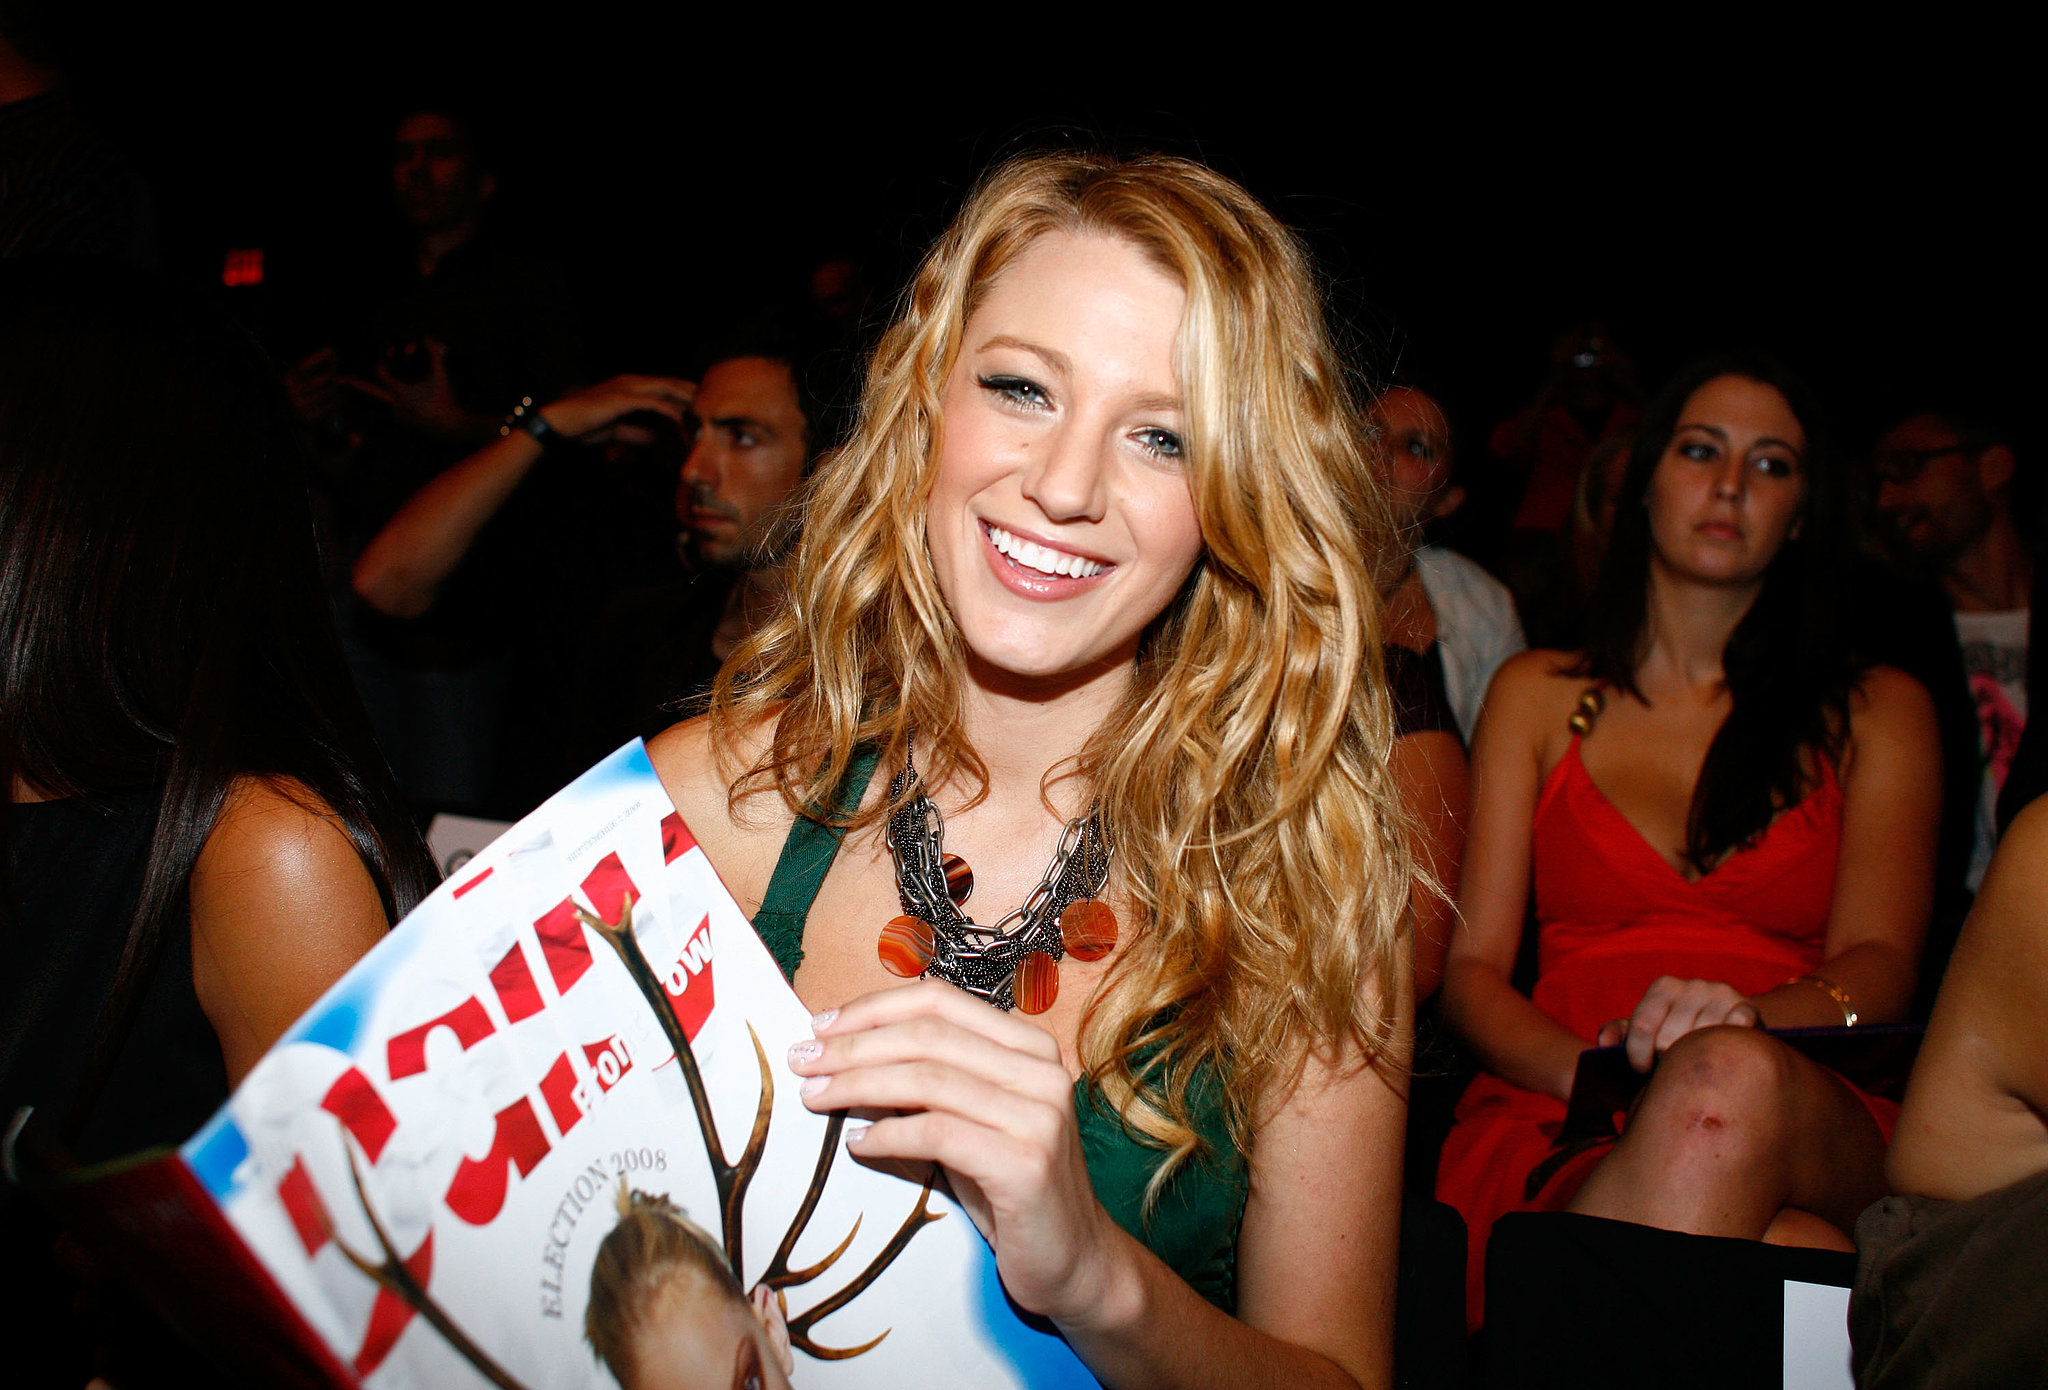 Blake Lively picked up a copy of The Daily during Spring Fashion Week in February 2008 at Bryant Park.